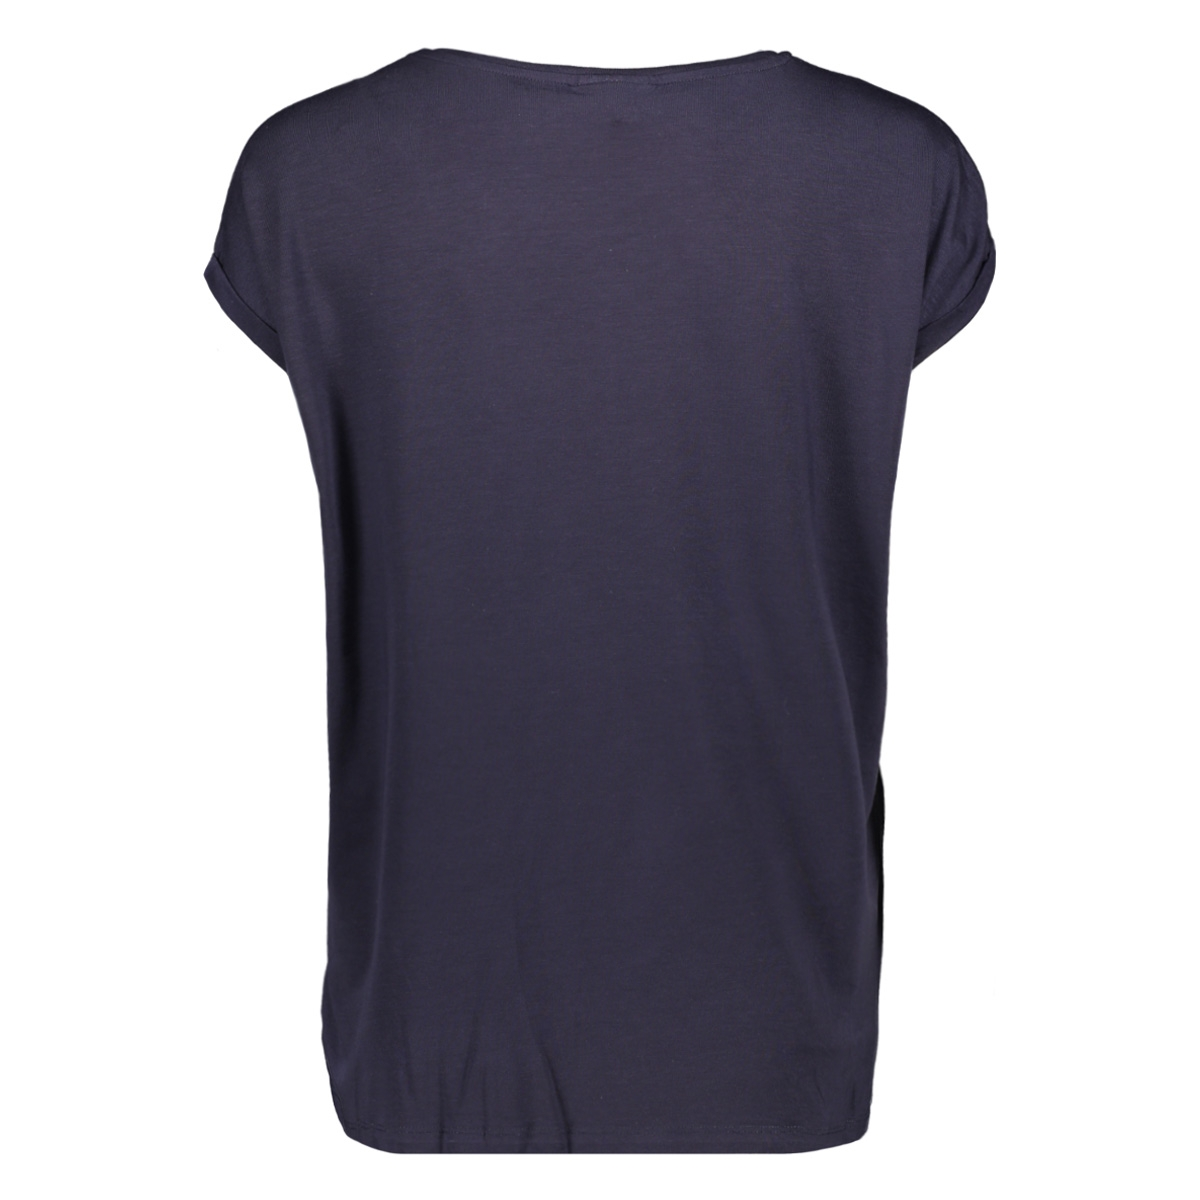 vmava plain ss top aop ga 10211788 vero moda t-shirt night sky/shine silv